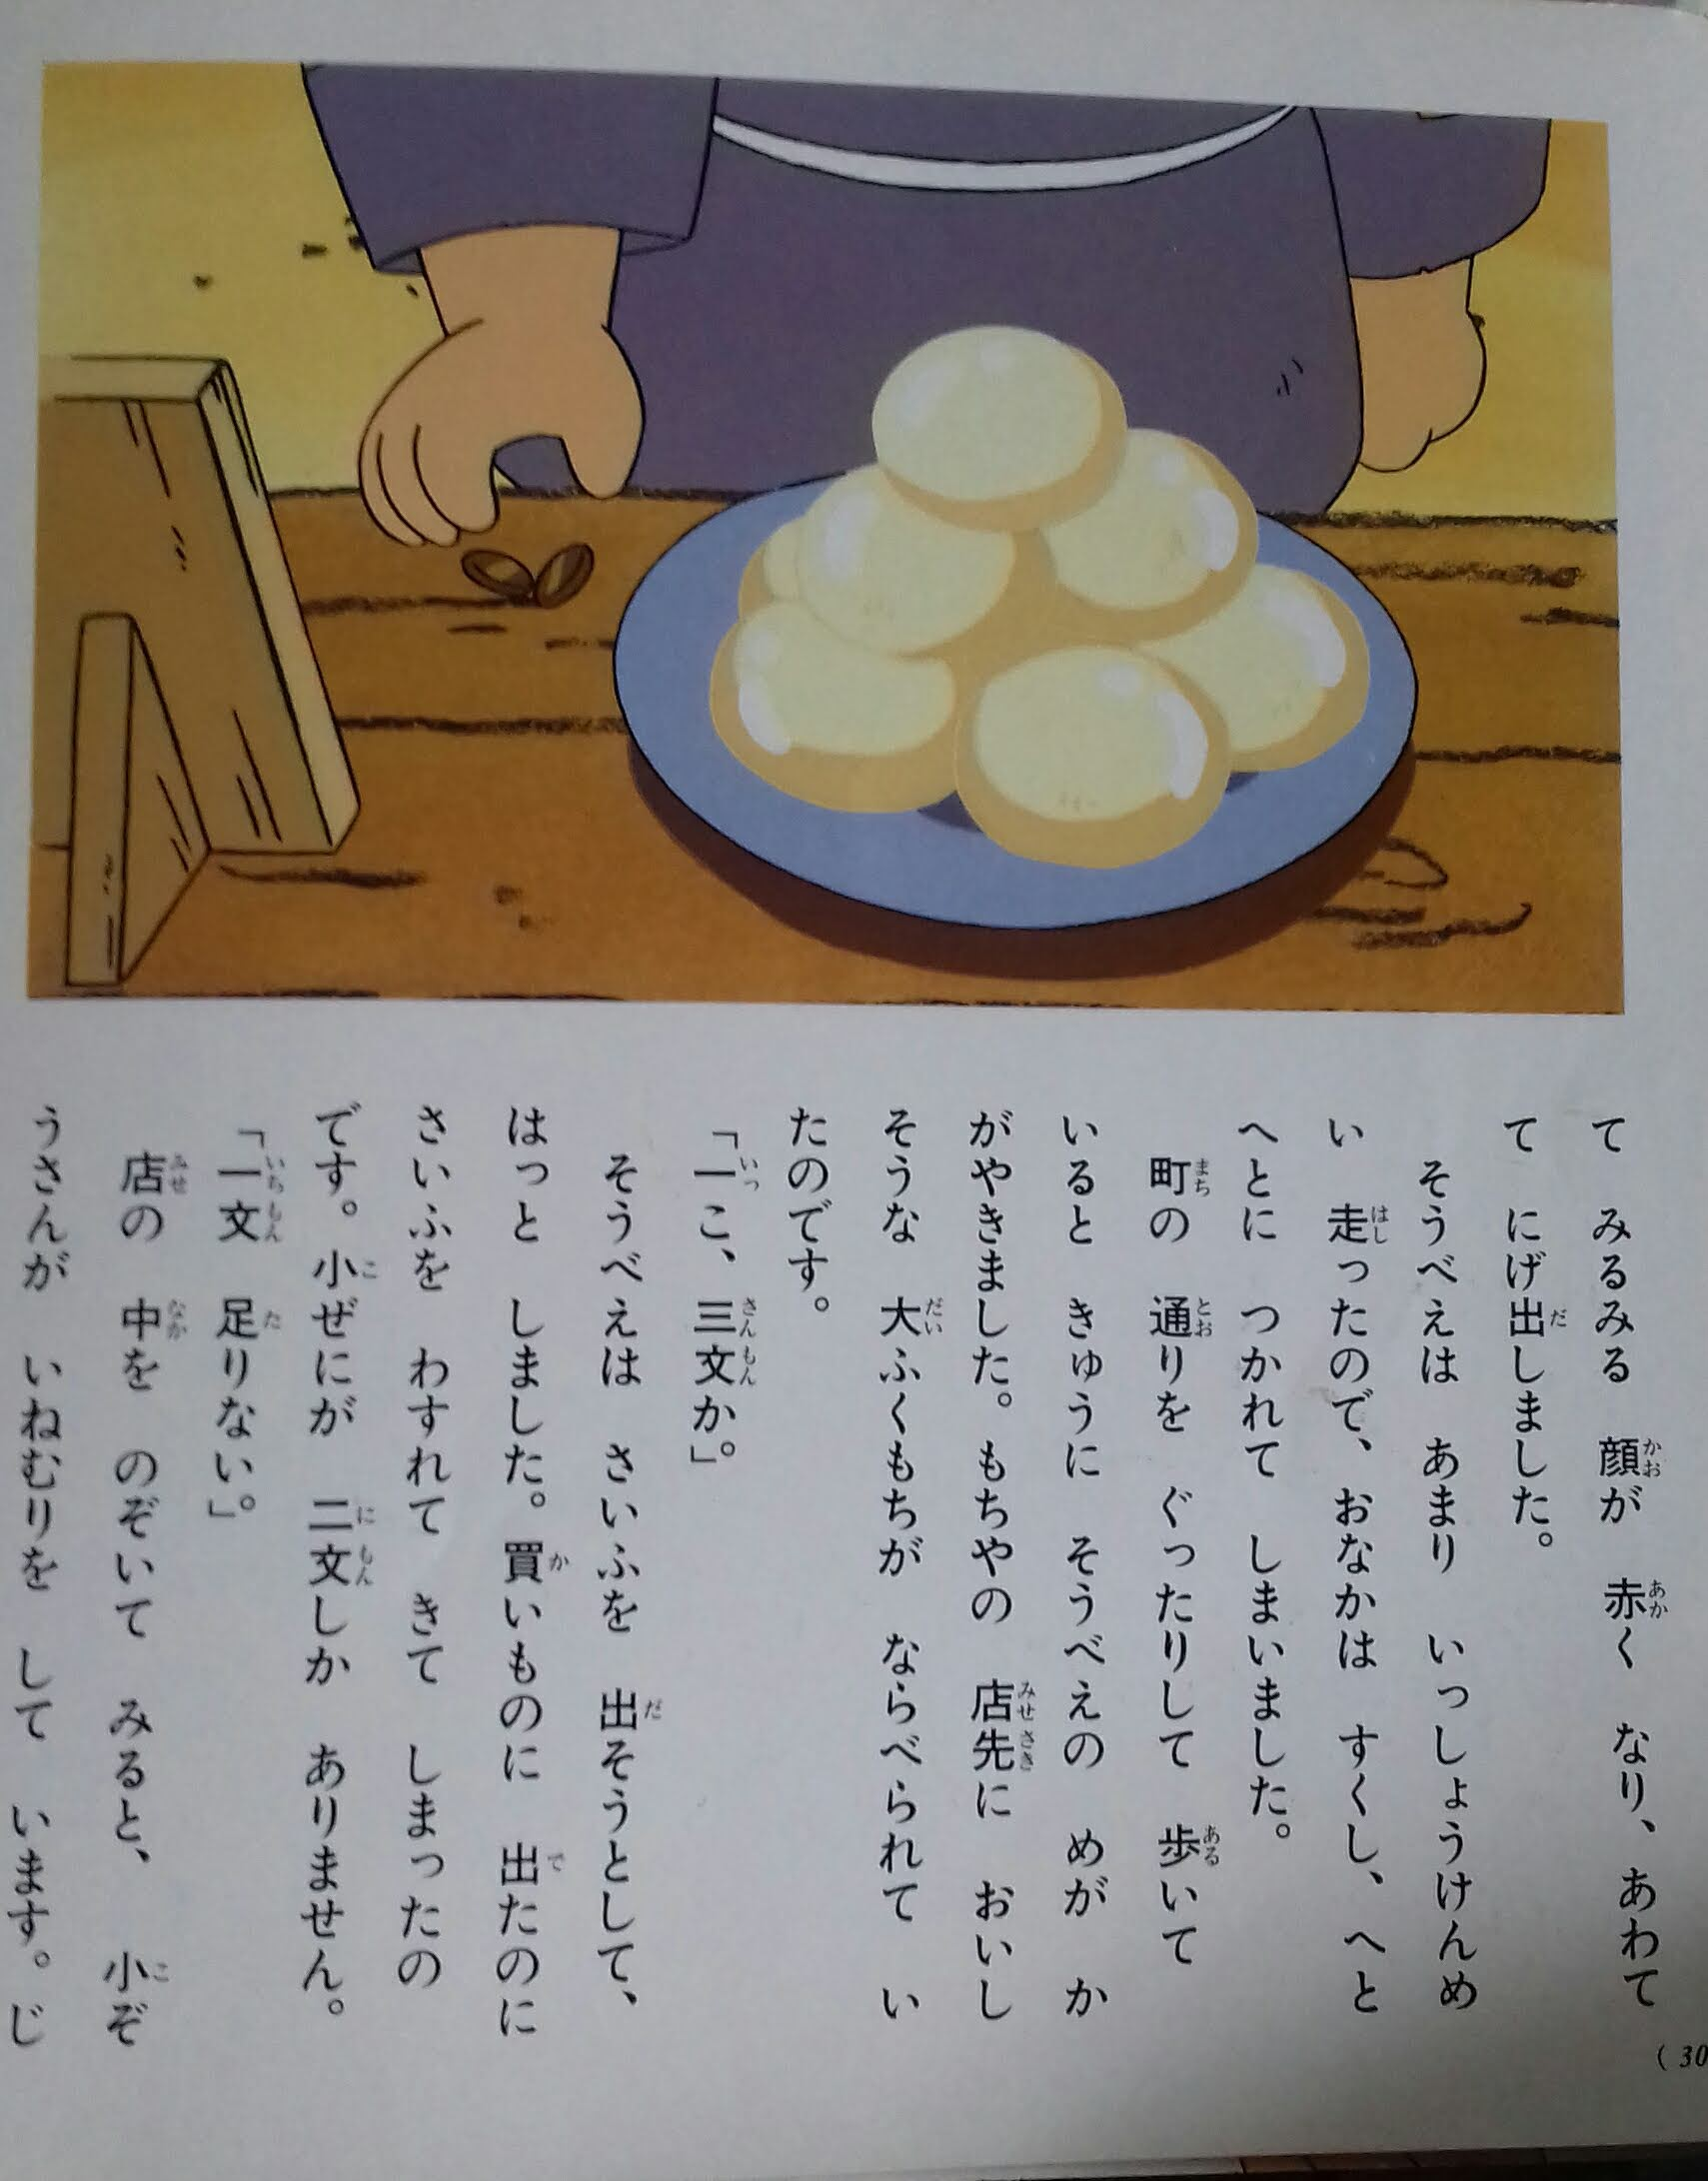 There are many rice cakes on a blue plate displaying at a storefront and a man standing near by, putting two coins.